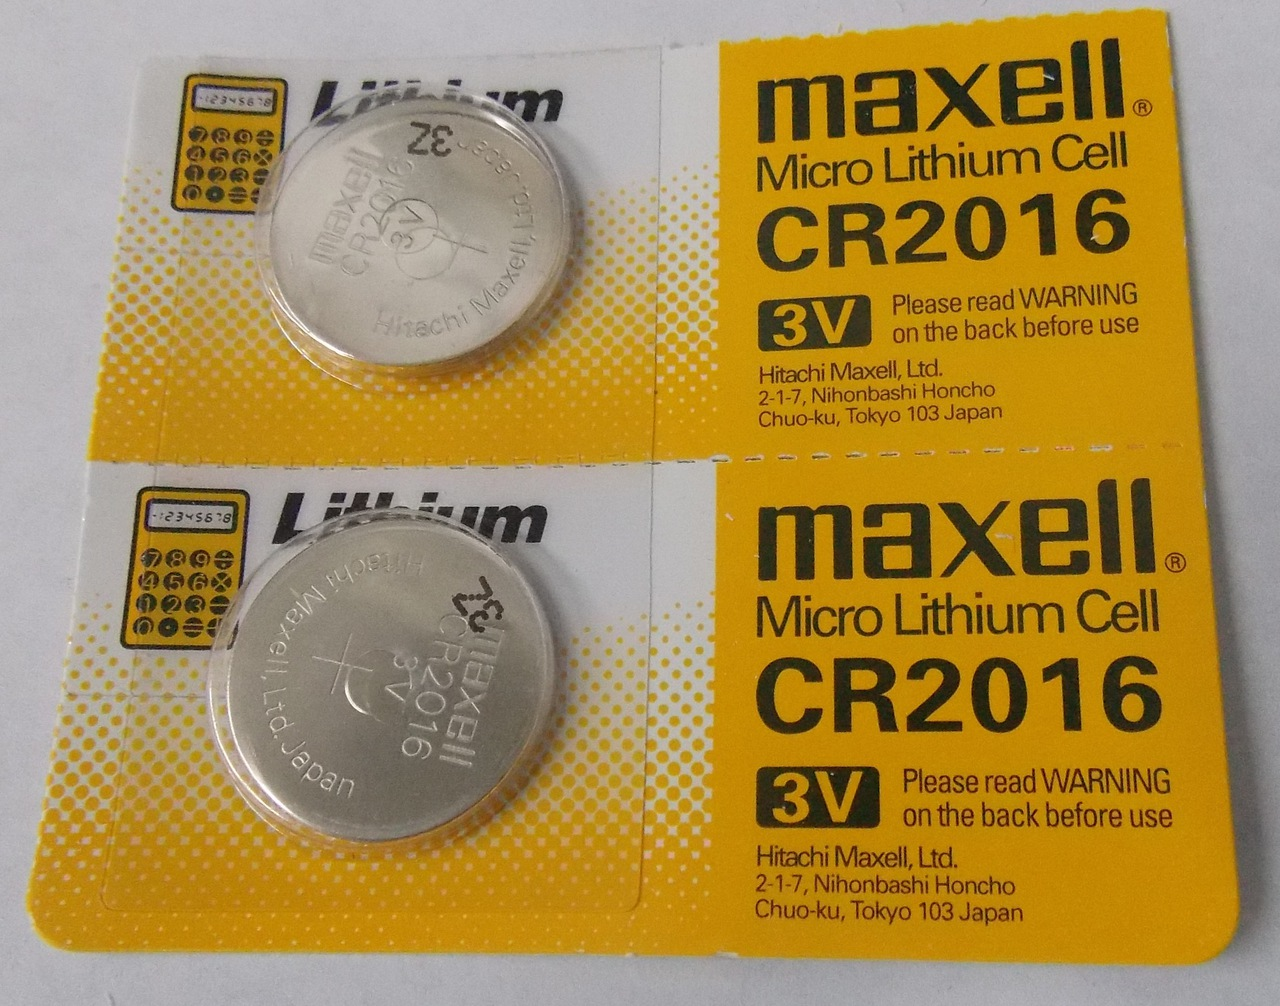 Maxell CR2016 3 Volt Lithium Coin Battery - 2 Pack -  FREE SHIPPING!